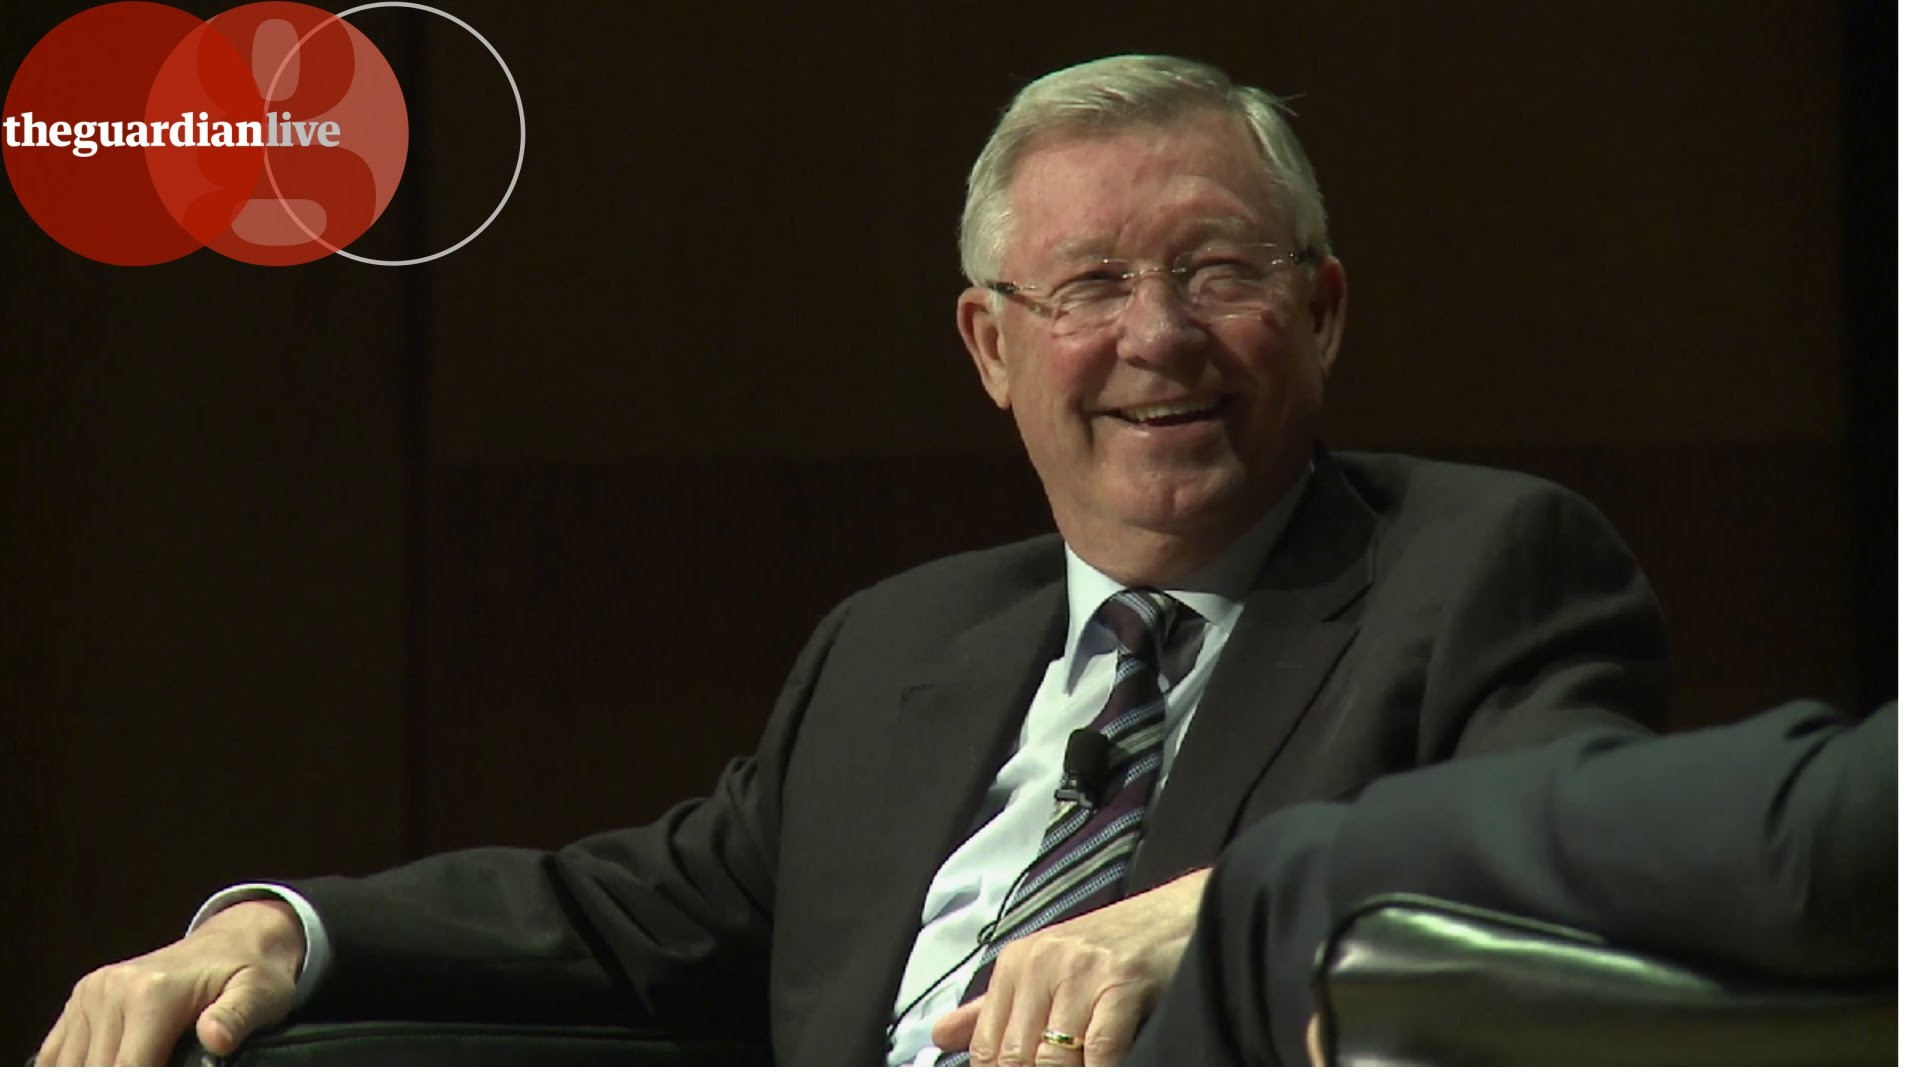 1920x1080 Sir Alex Ferguson on being offered the England job | Guardian Live